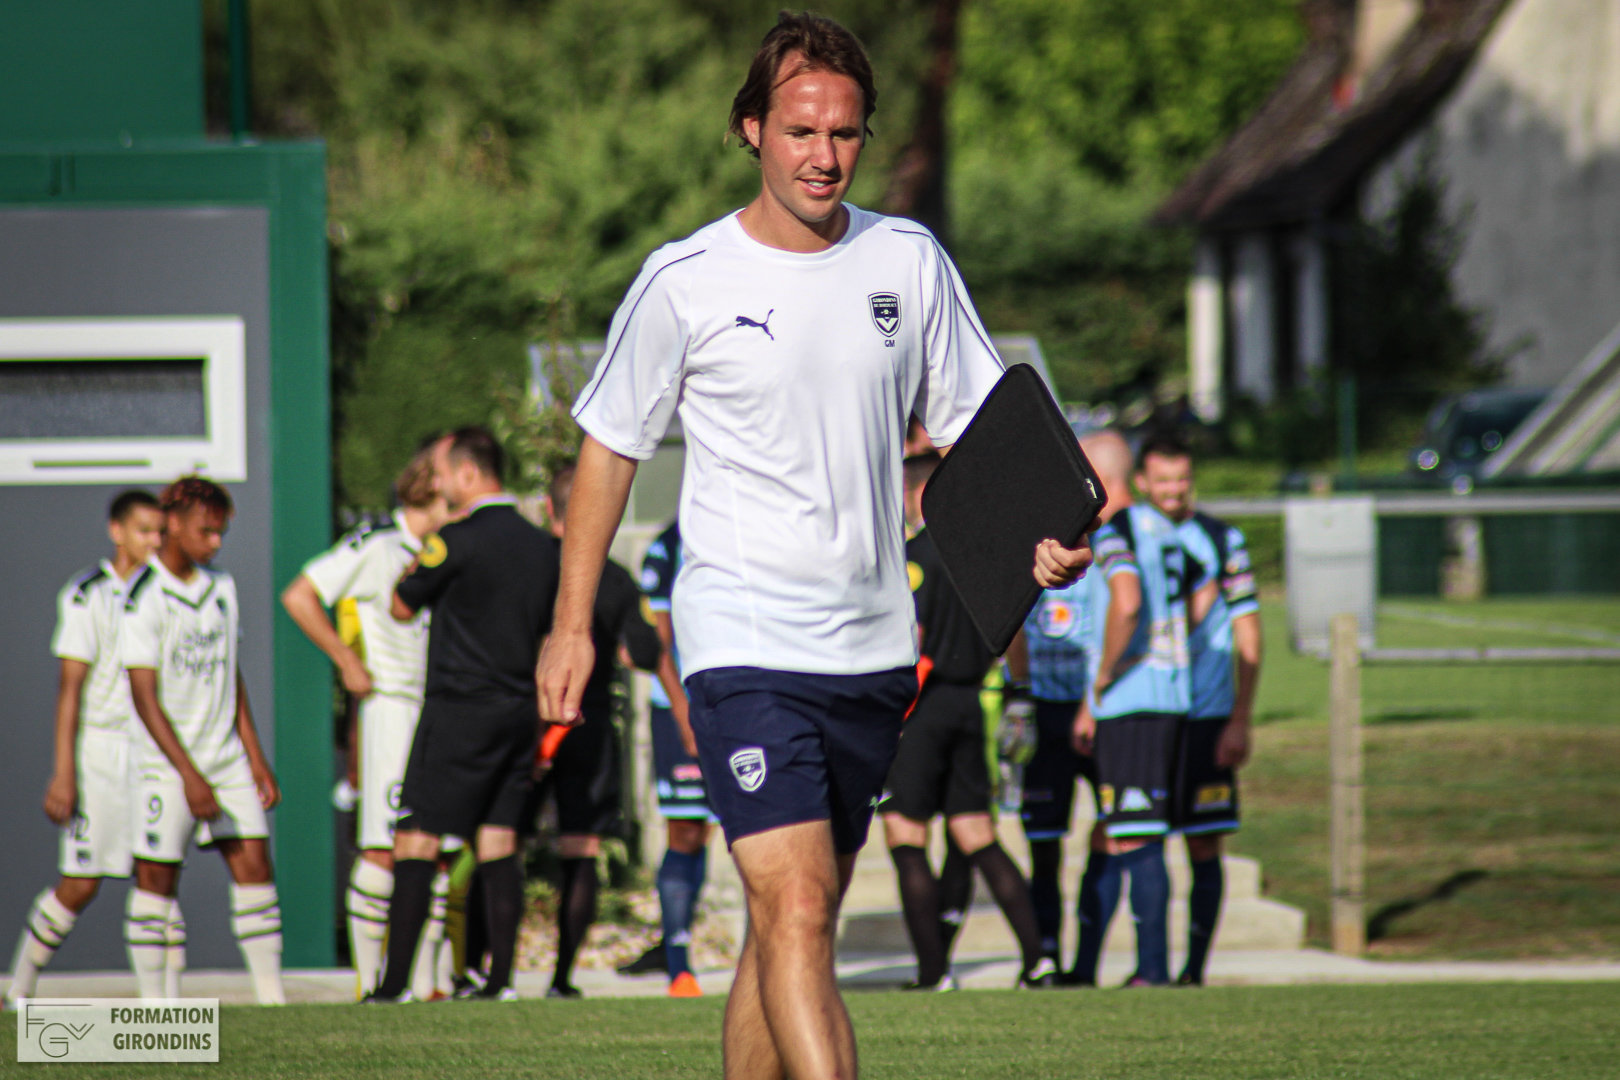 Cfa Girondins : Le programme complet des matchs amicaux - Formation Girondins